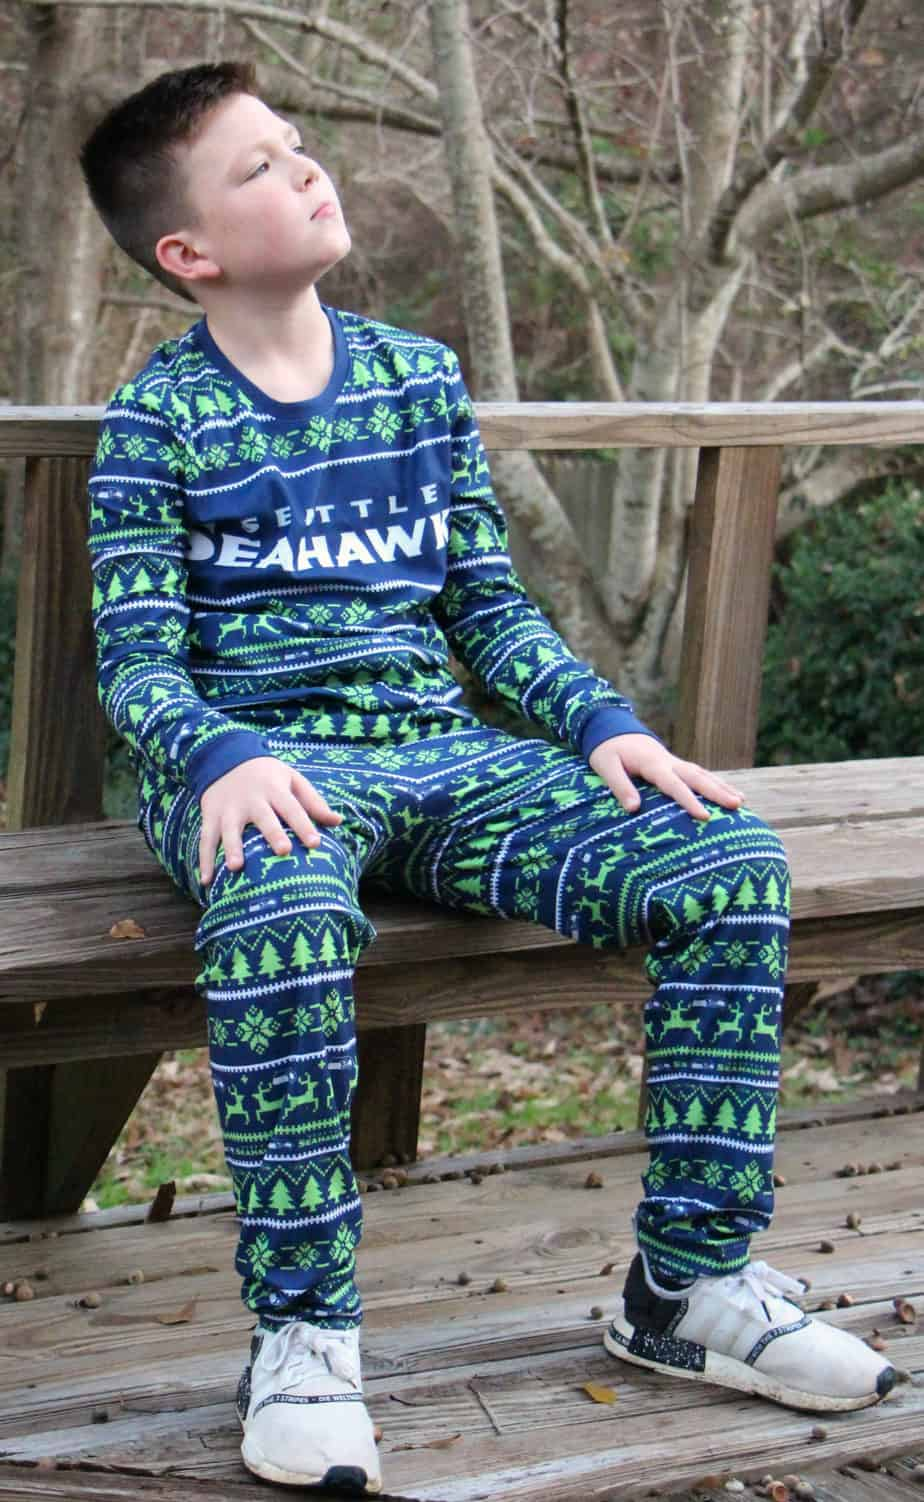 seattle seahawks ugly pajamas for kids